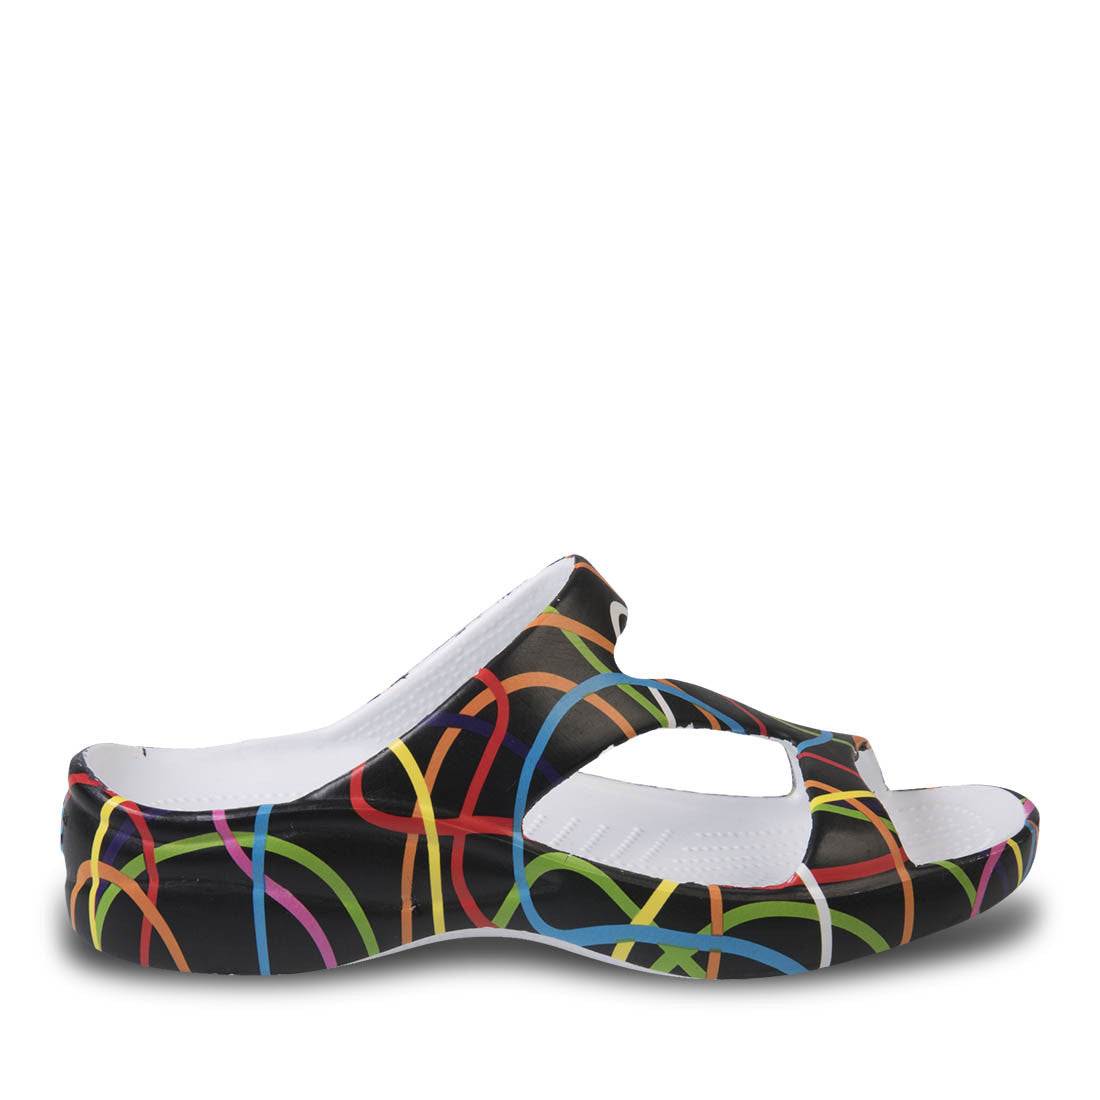 Image of Kids' Loudmouth Z Sandals - Scribblz